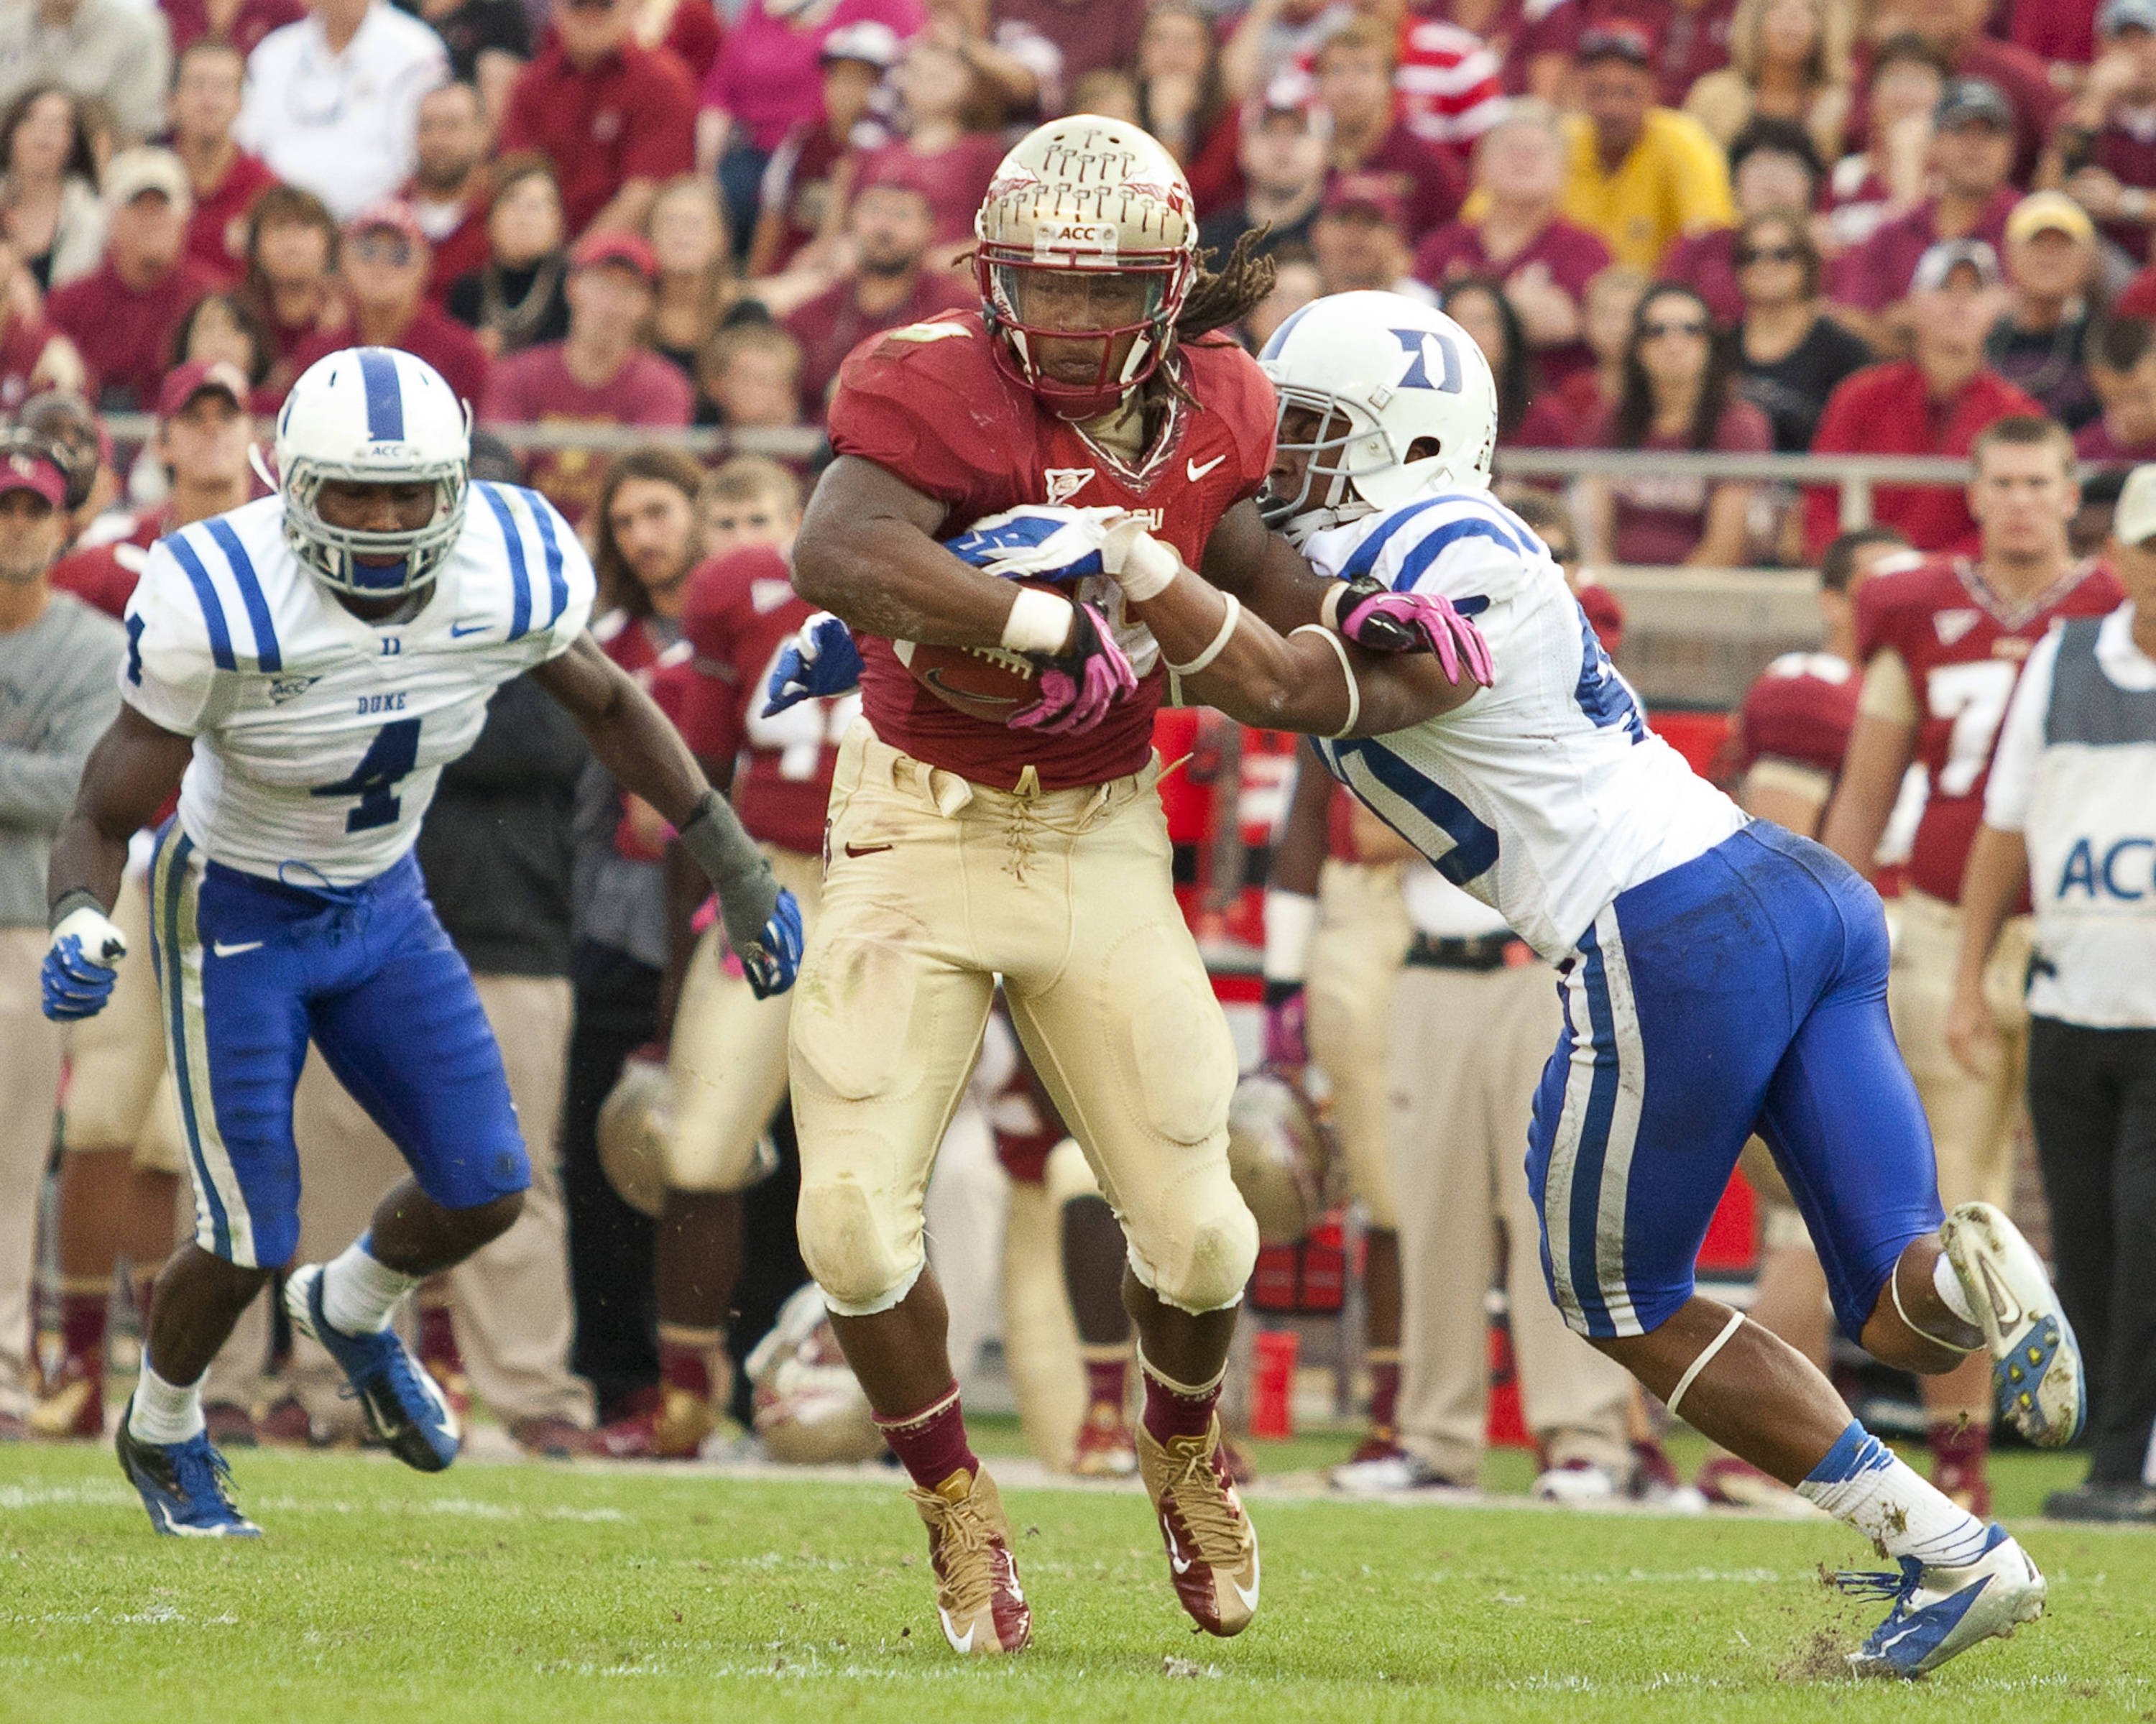 Devonta Freeman (8) carries the ball during FSU's 48-7 victory over Duke on October 27, 2012 in Tallahassee, Fla.